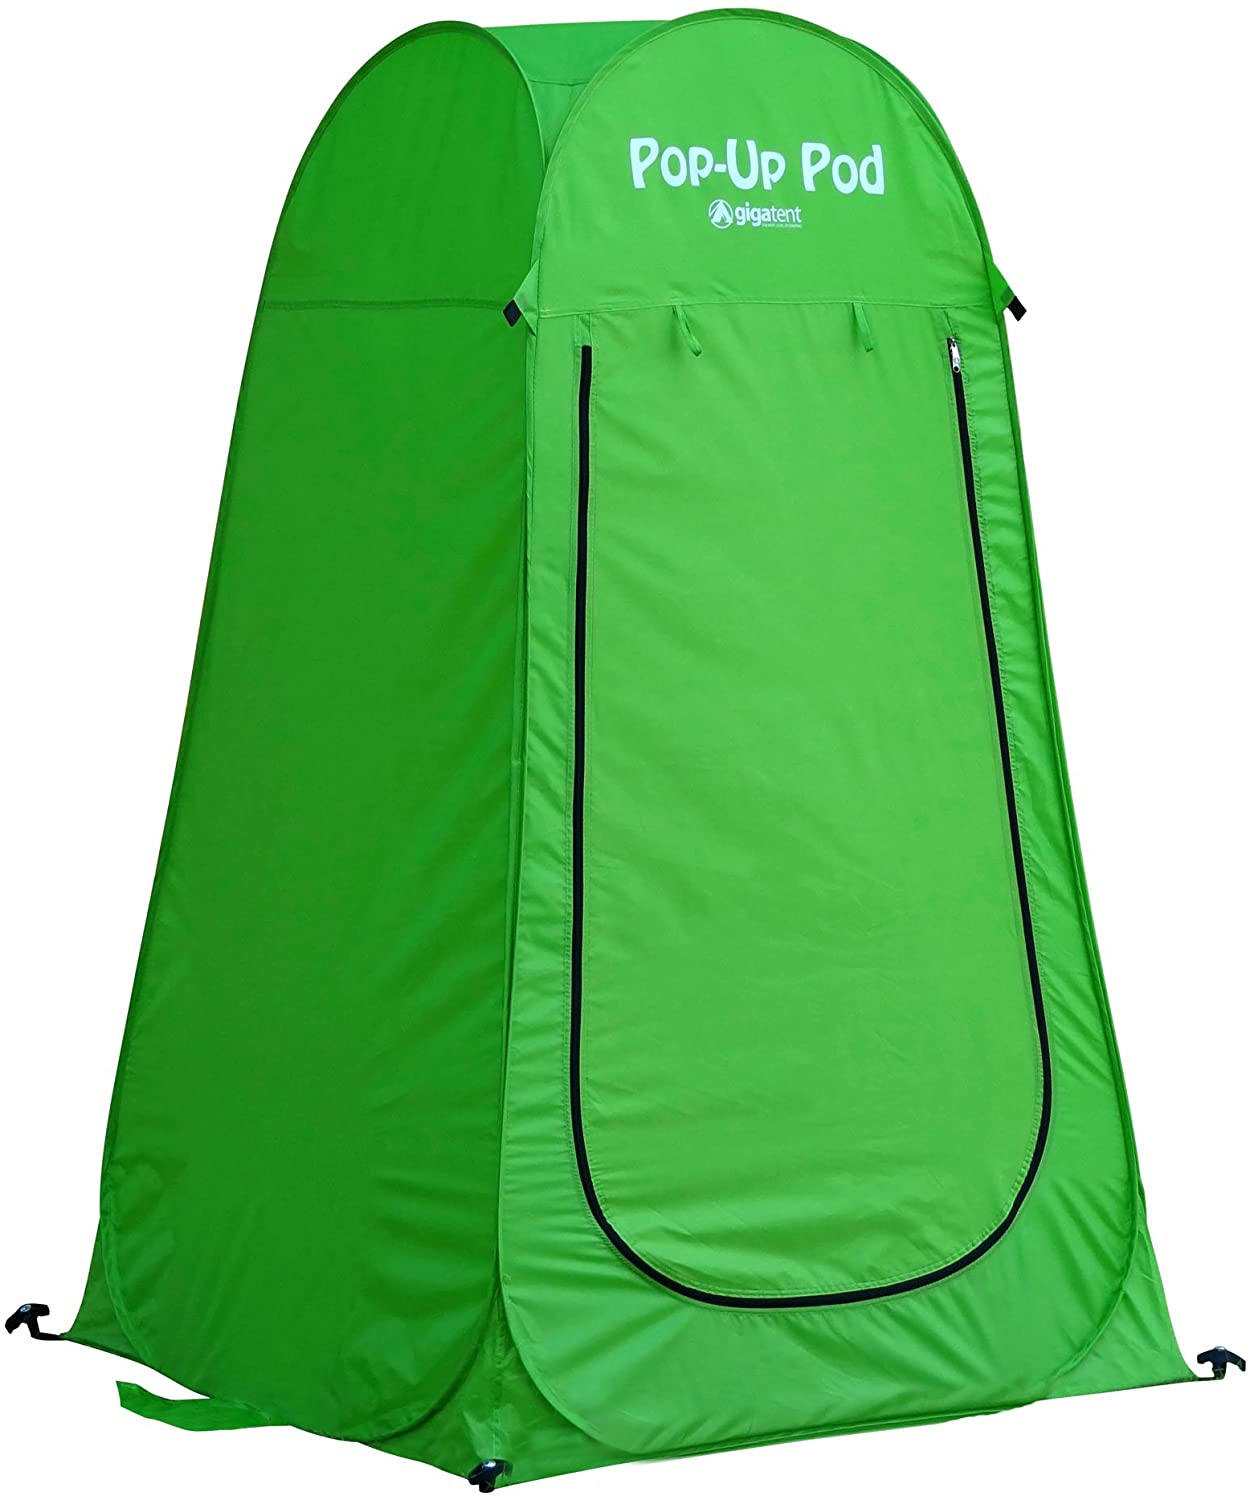 GigaTent Pop Up Pod Changing Room Privacy Tent – Instant Portable Outdoor Shower Tent, Camp Toilet, Rain Shelter for Camping & Beach – Lightweight & Sturdy, Easy Set Up, Foldable - with Carry Bag: Sports & Outdoors